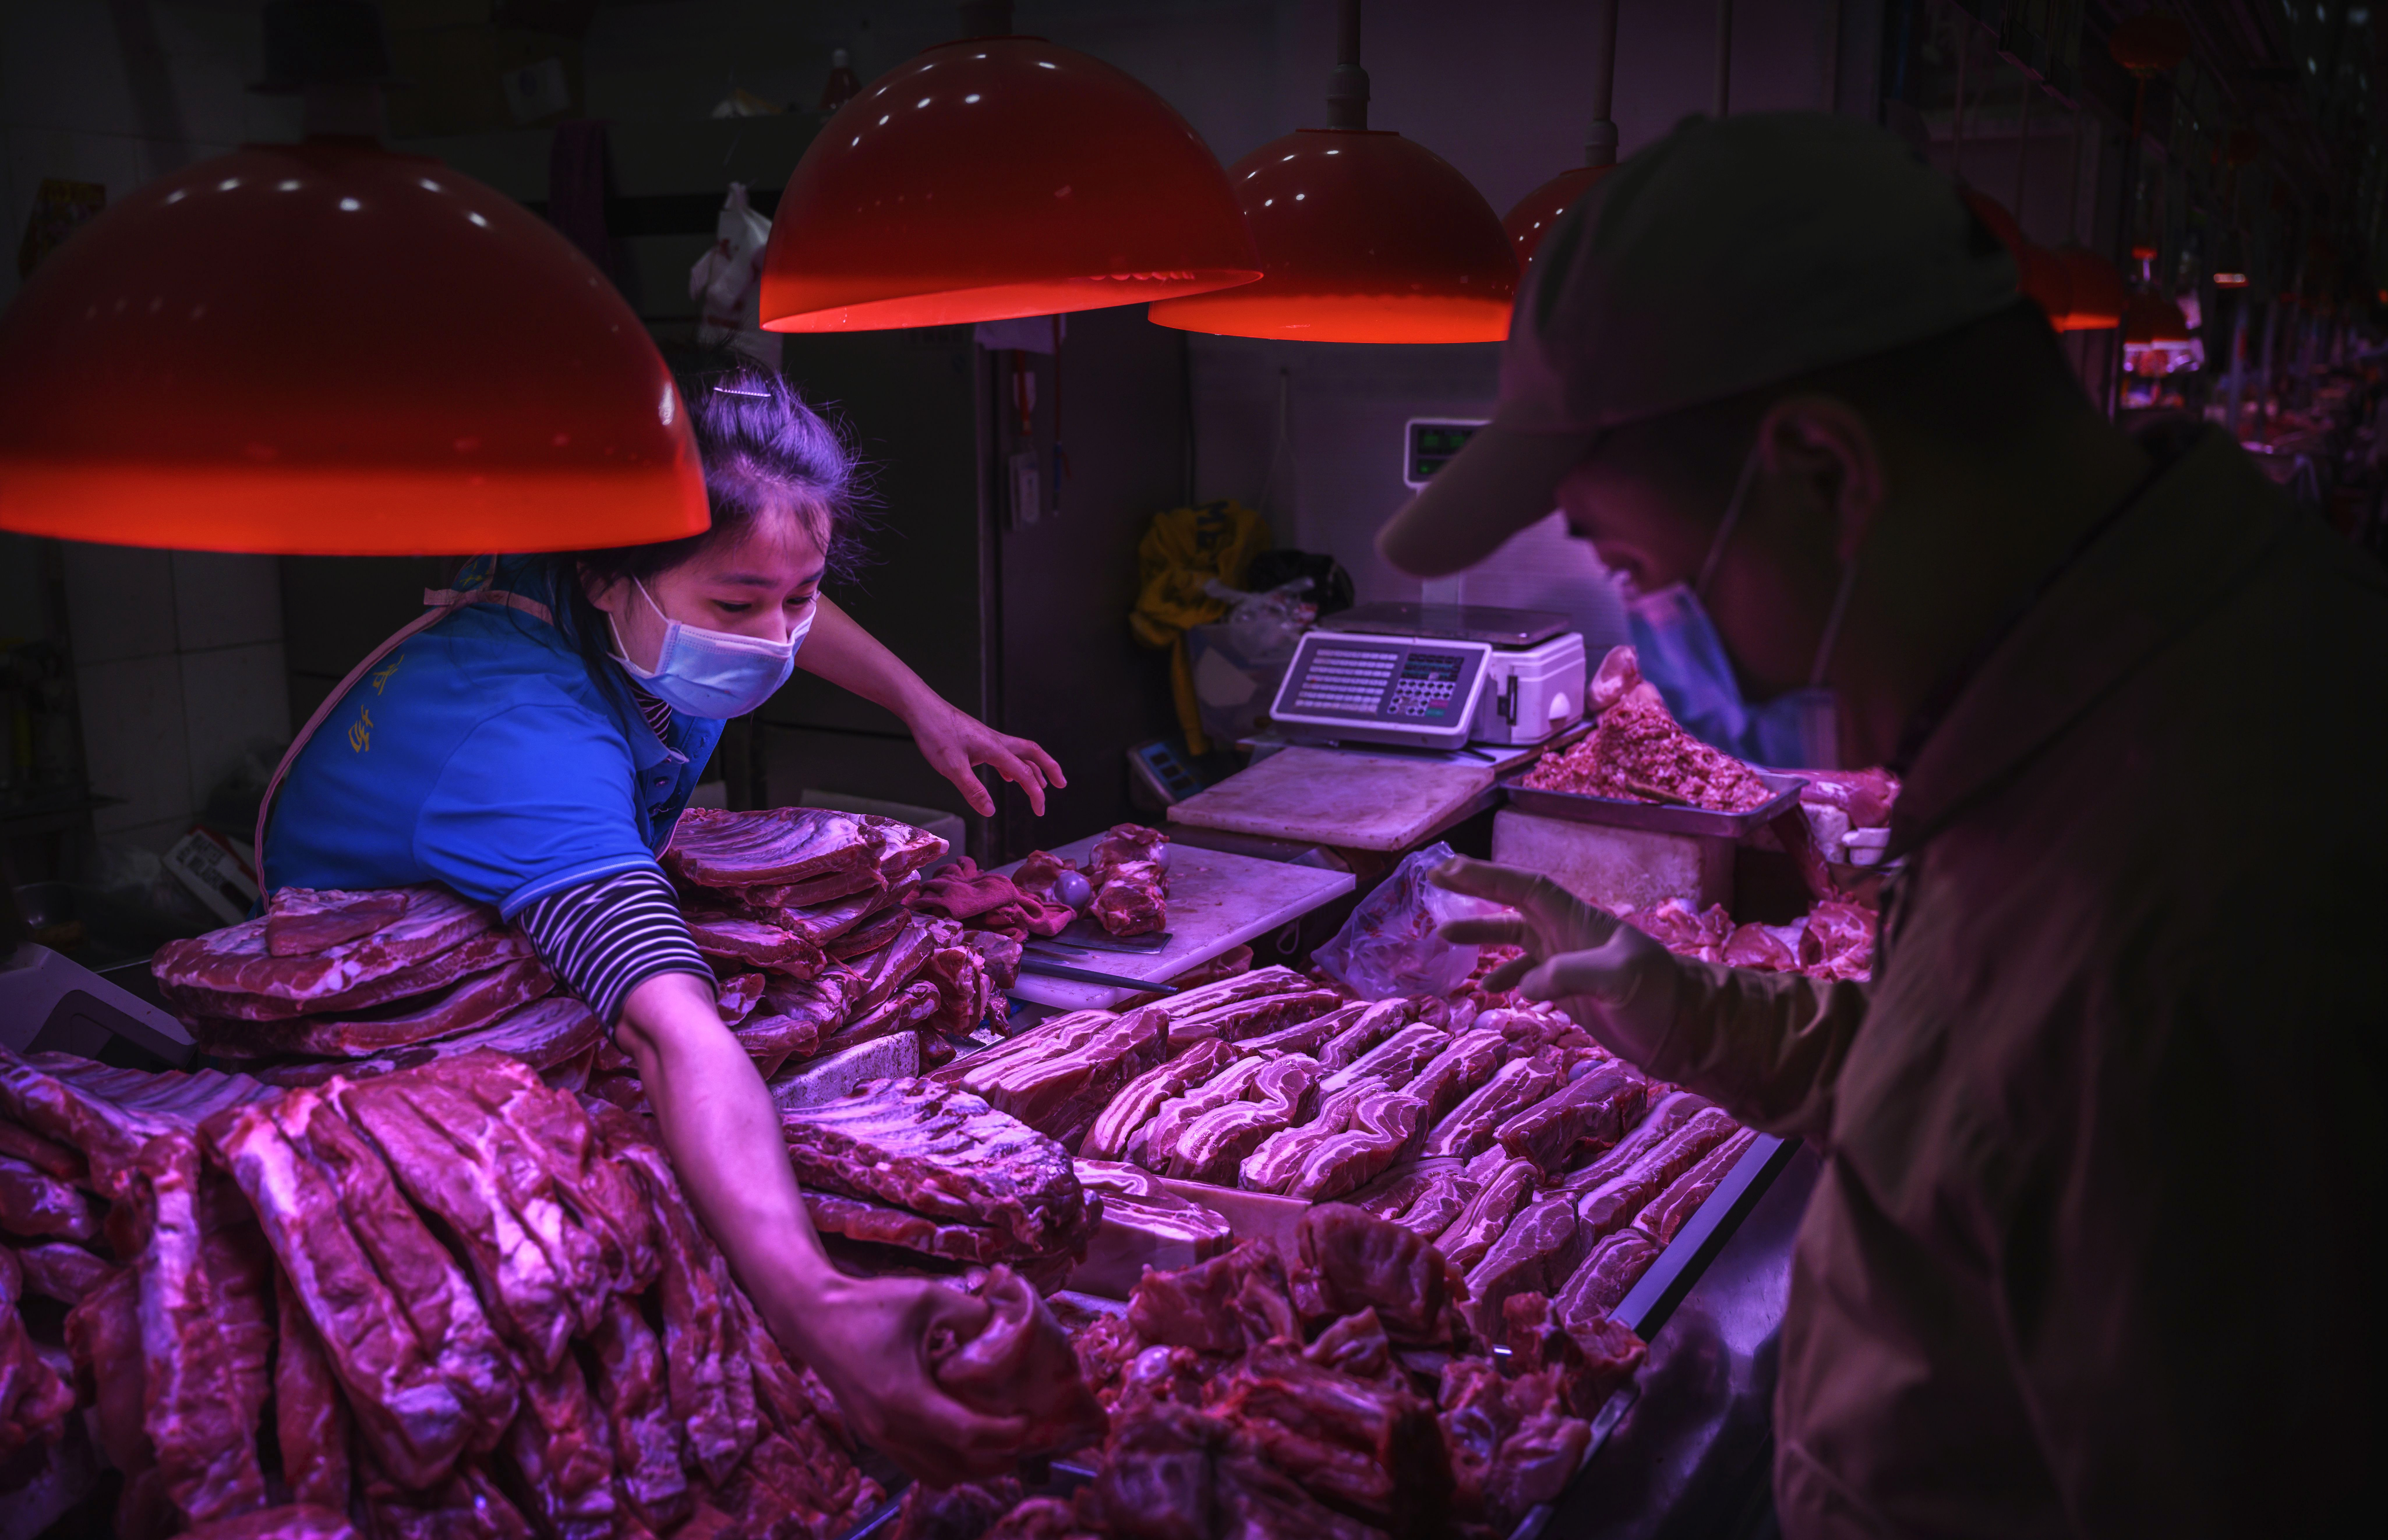 A Chinese meat vendor wears a protective mask as she serves a customer at her stall at a food market on April 24, 2020 in Beijing, China. (Photo by Kevin Frayer/Getty Images)